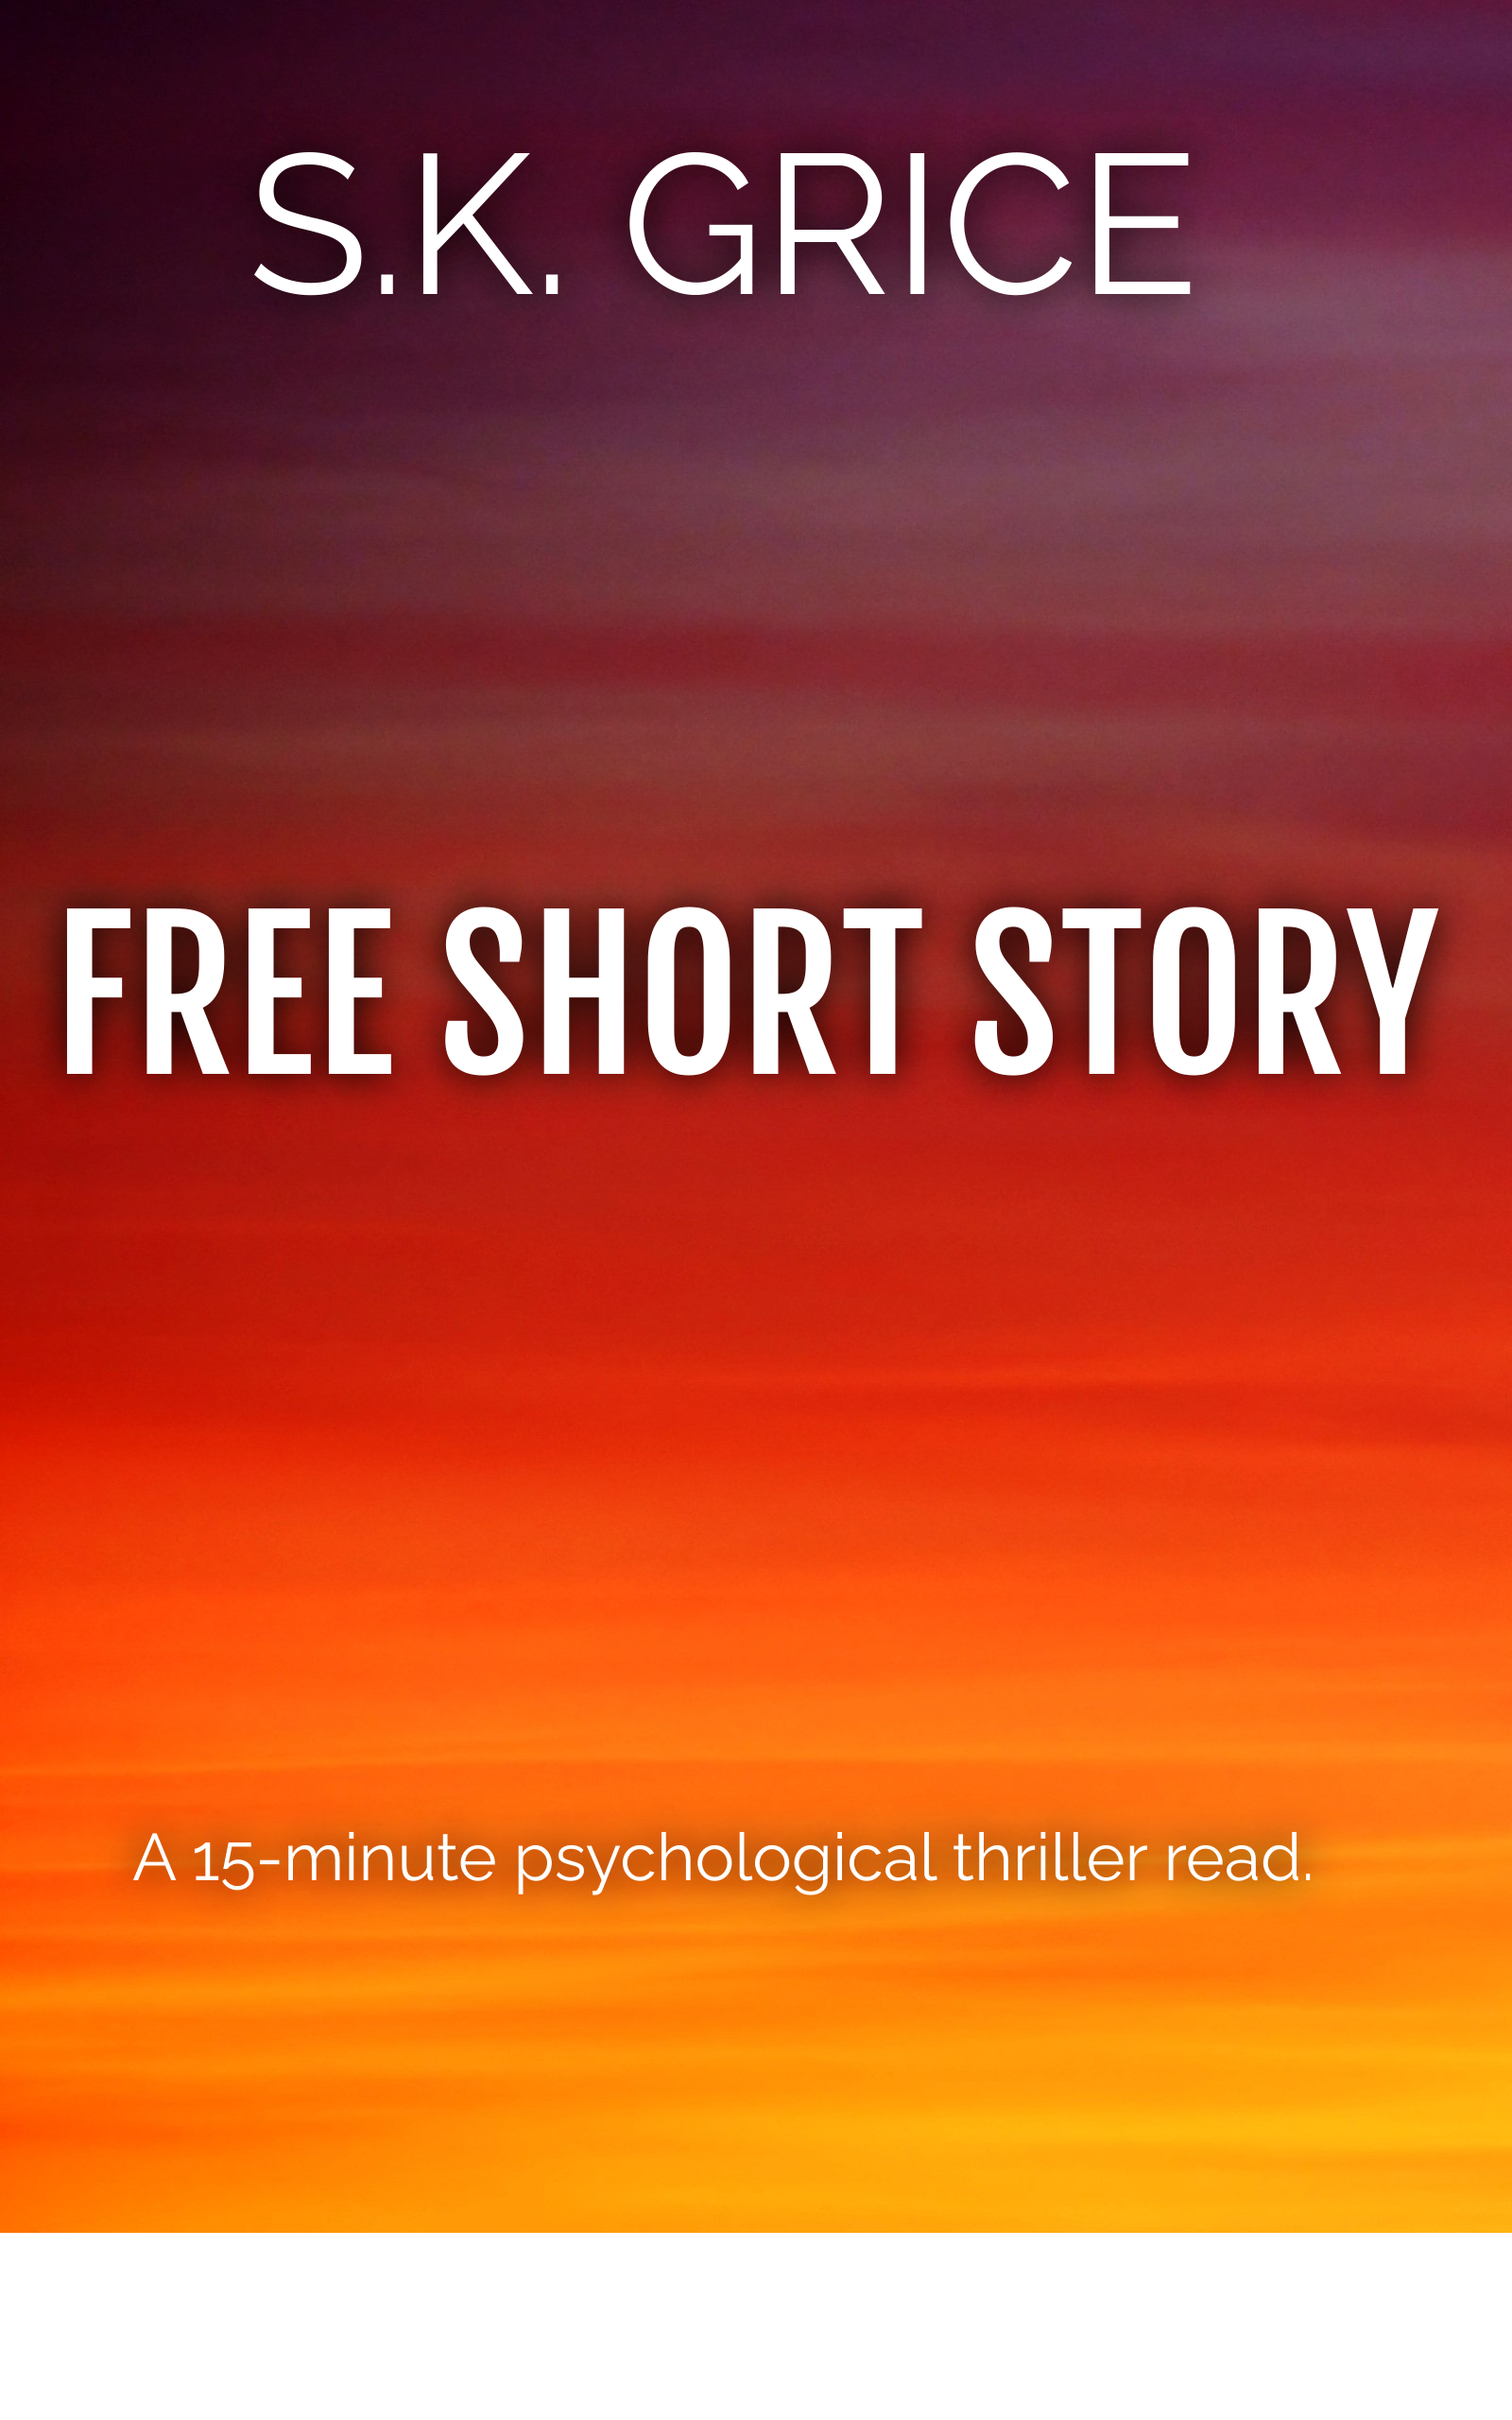 Short Story Cover 1